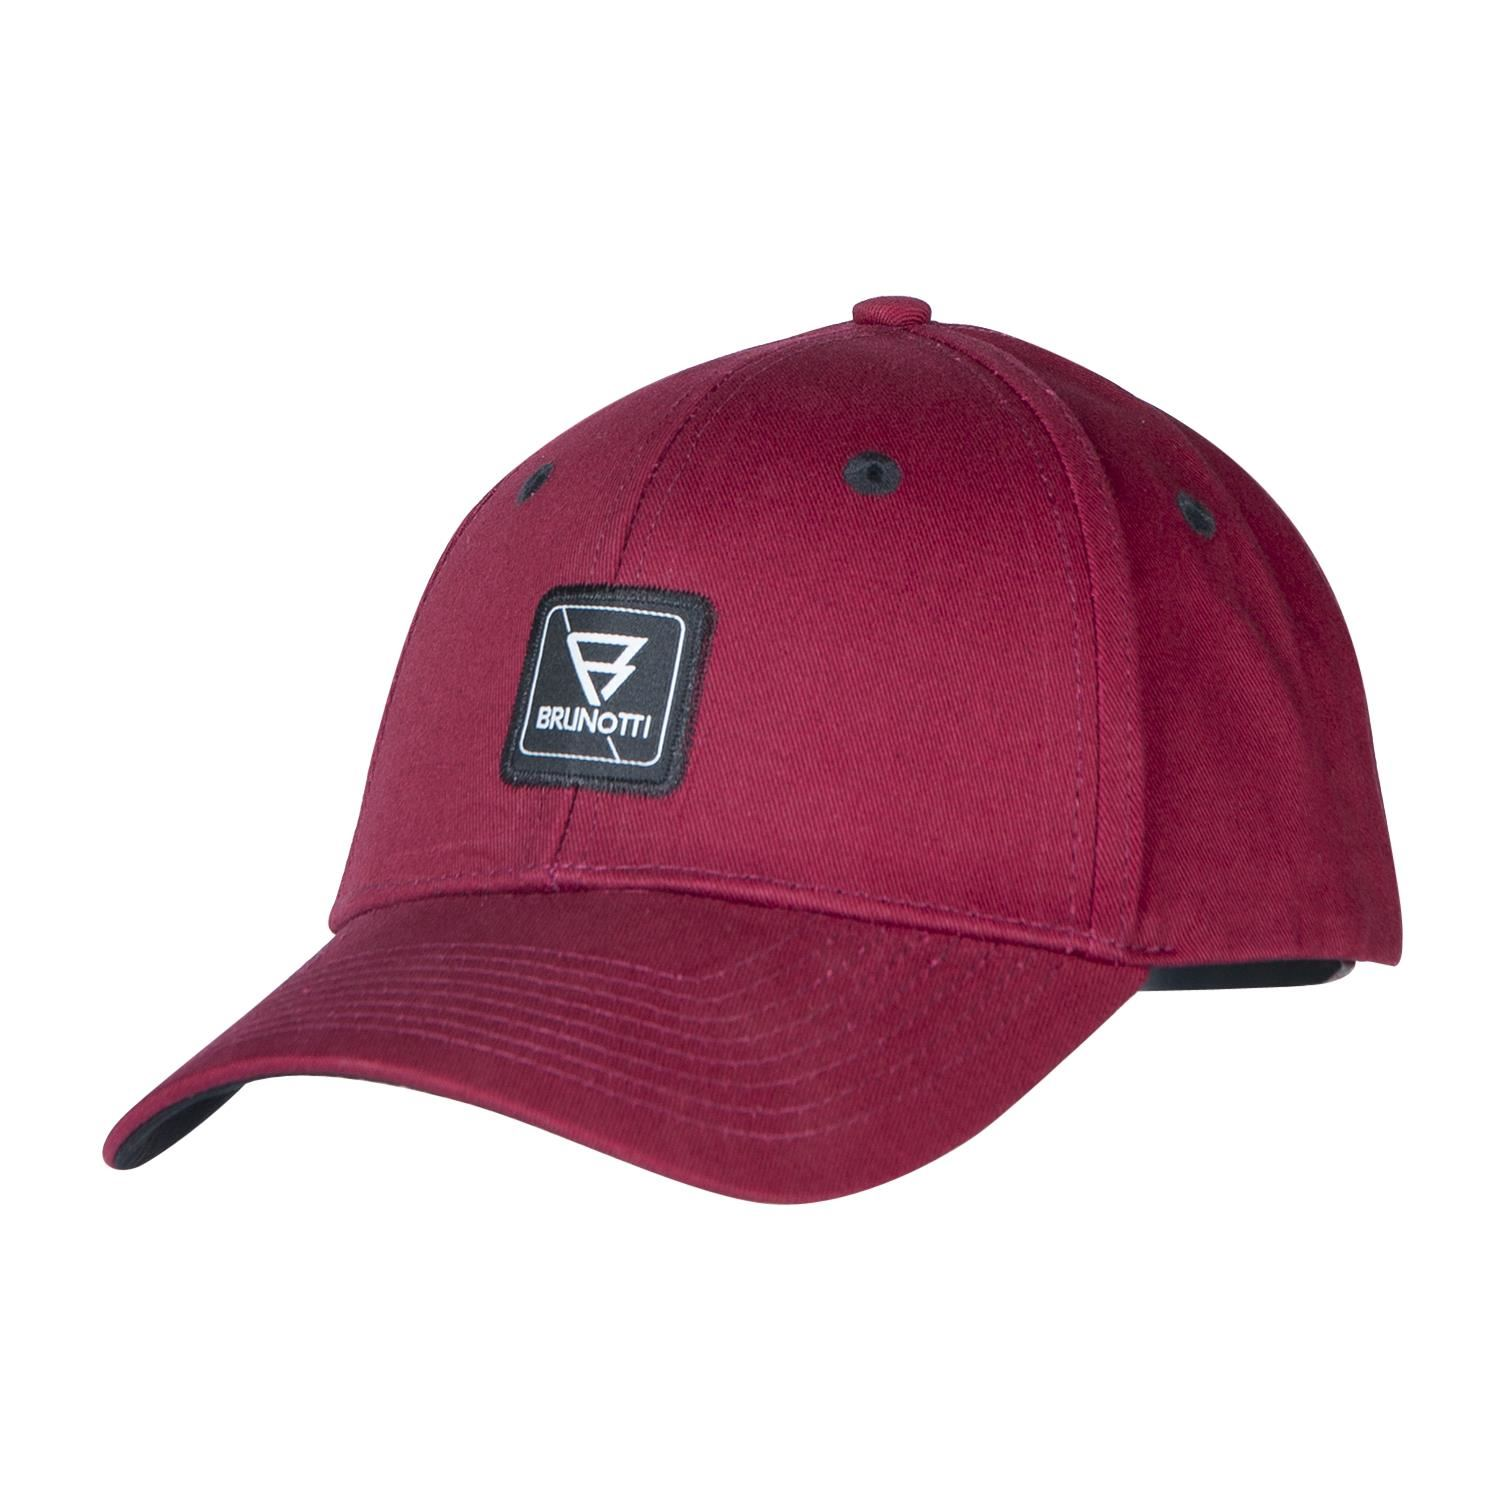 Brunotti Lincoln  (braun) - herren caps - Brunotti online shop